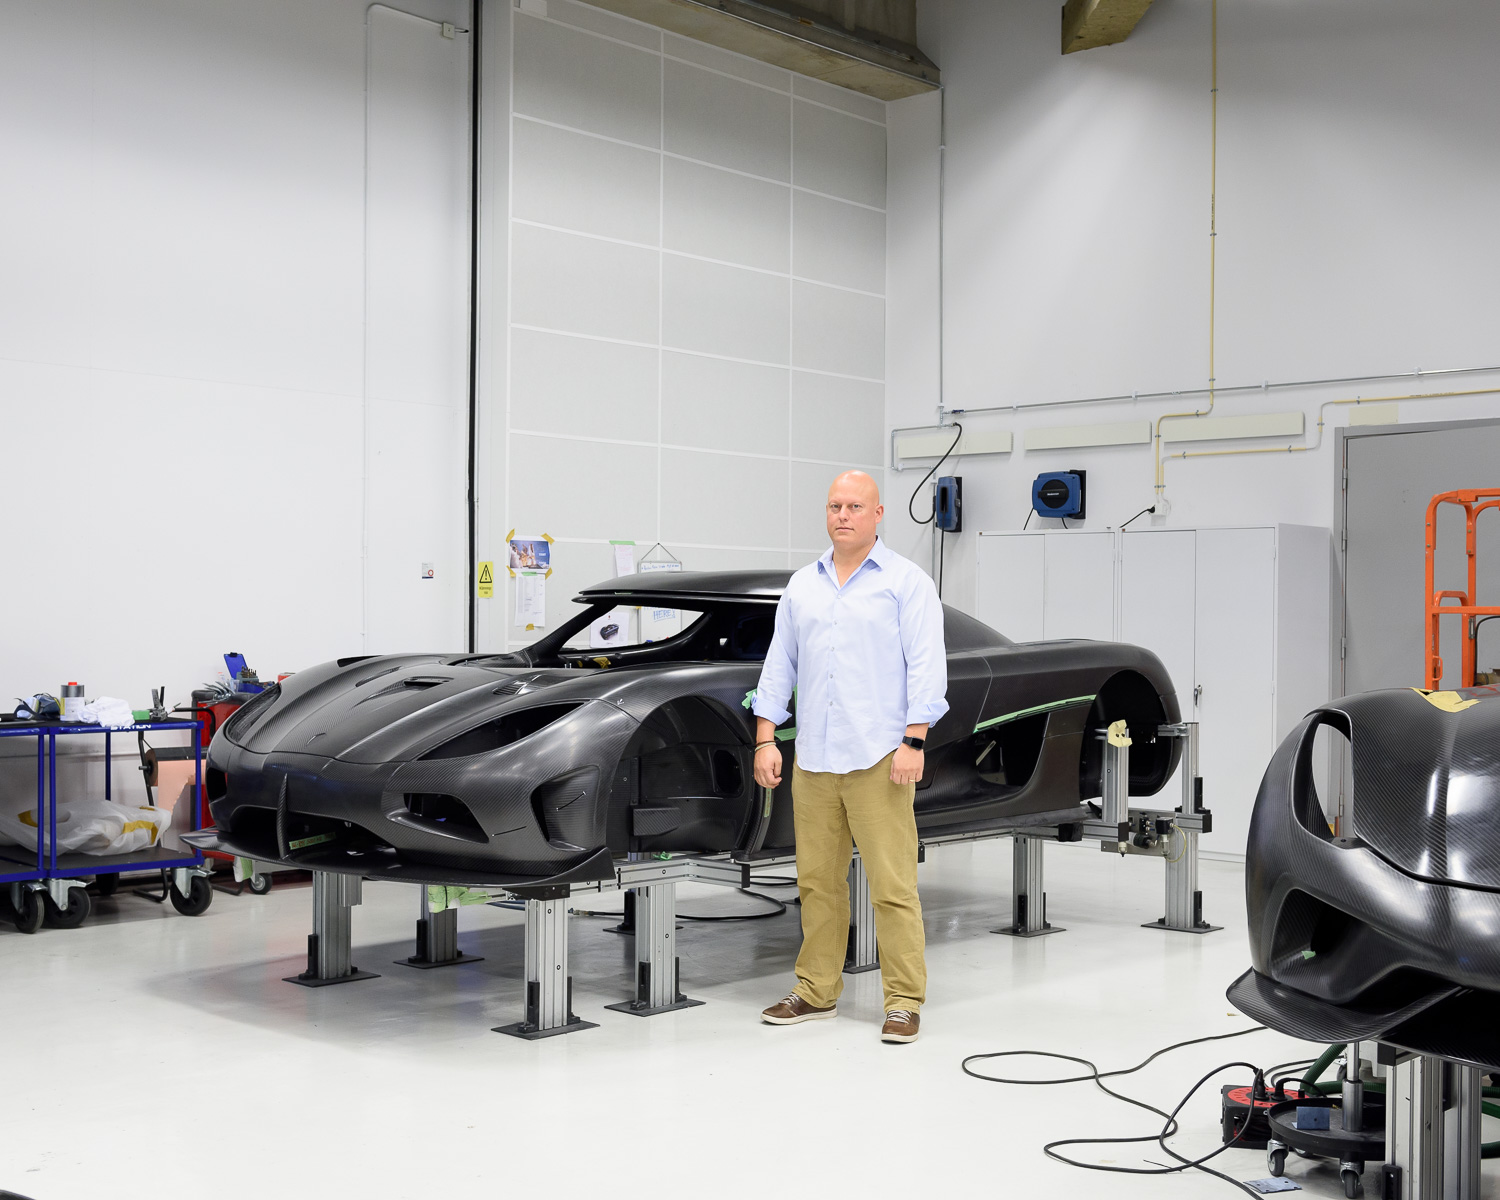 Christian von Koenigsegg standing in front of the shell of what will become one of the fastest cars in the world.